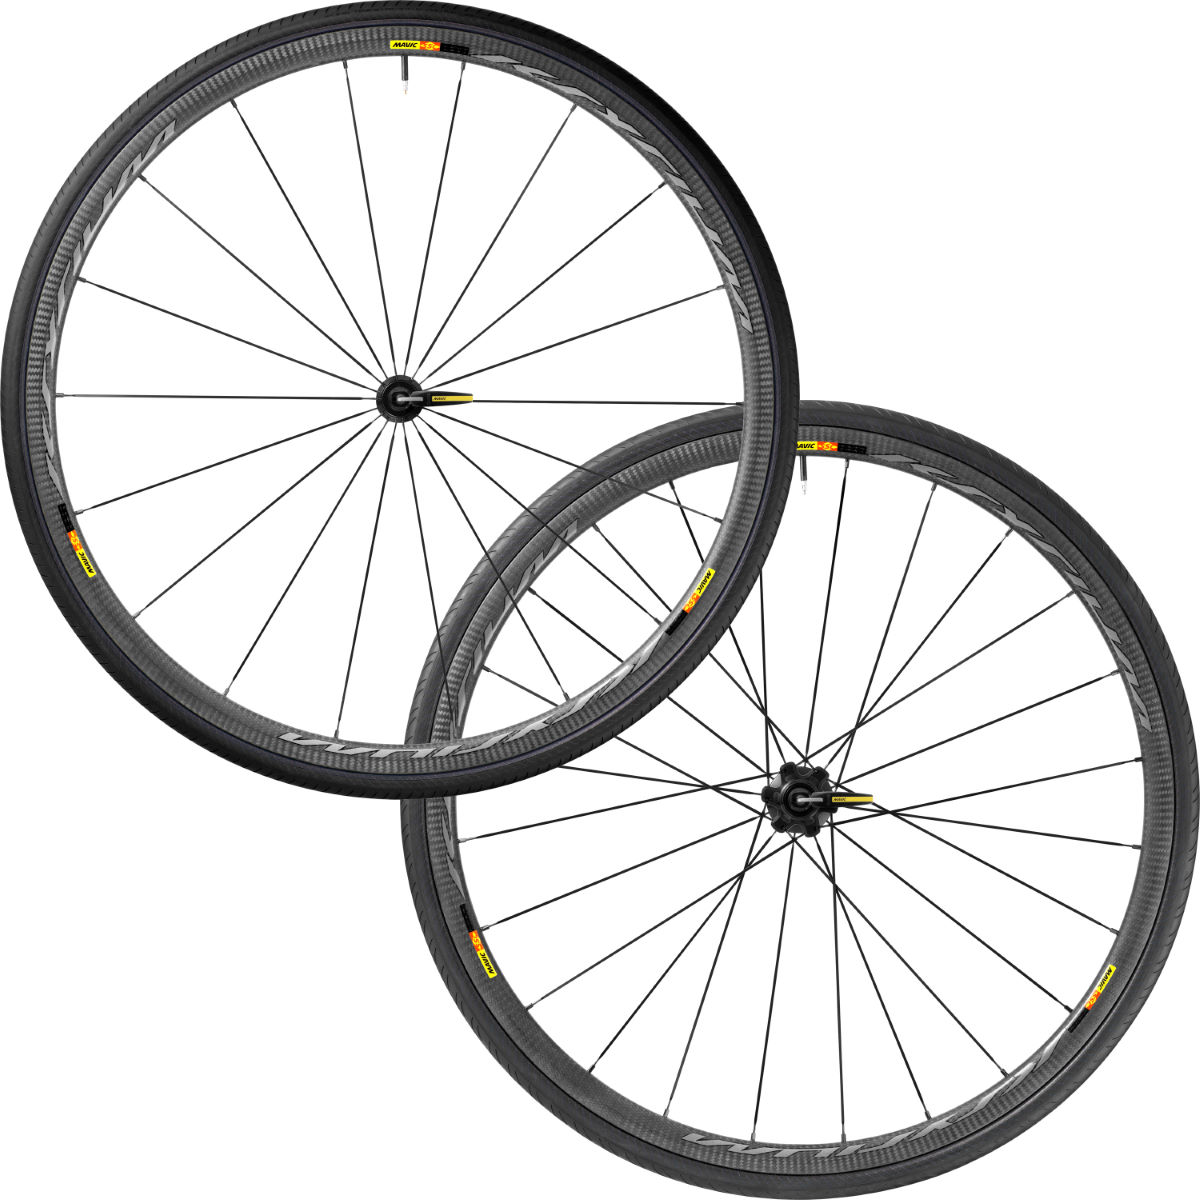 Wheel set Mavic Ksyrium Pro Carbon SL (for tubular) - Competition wheels